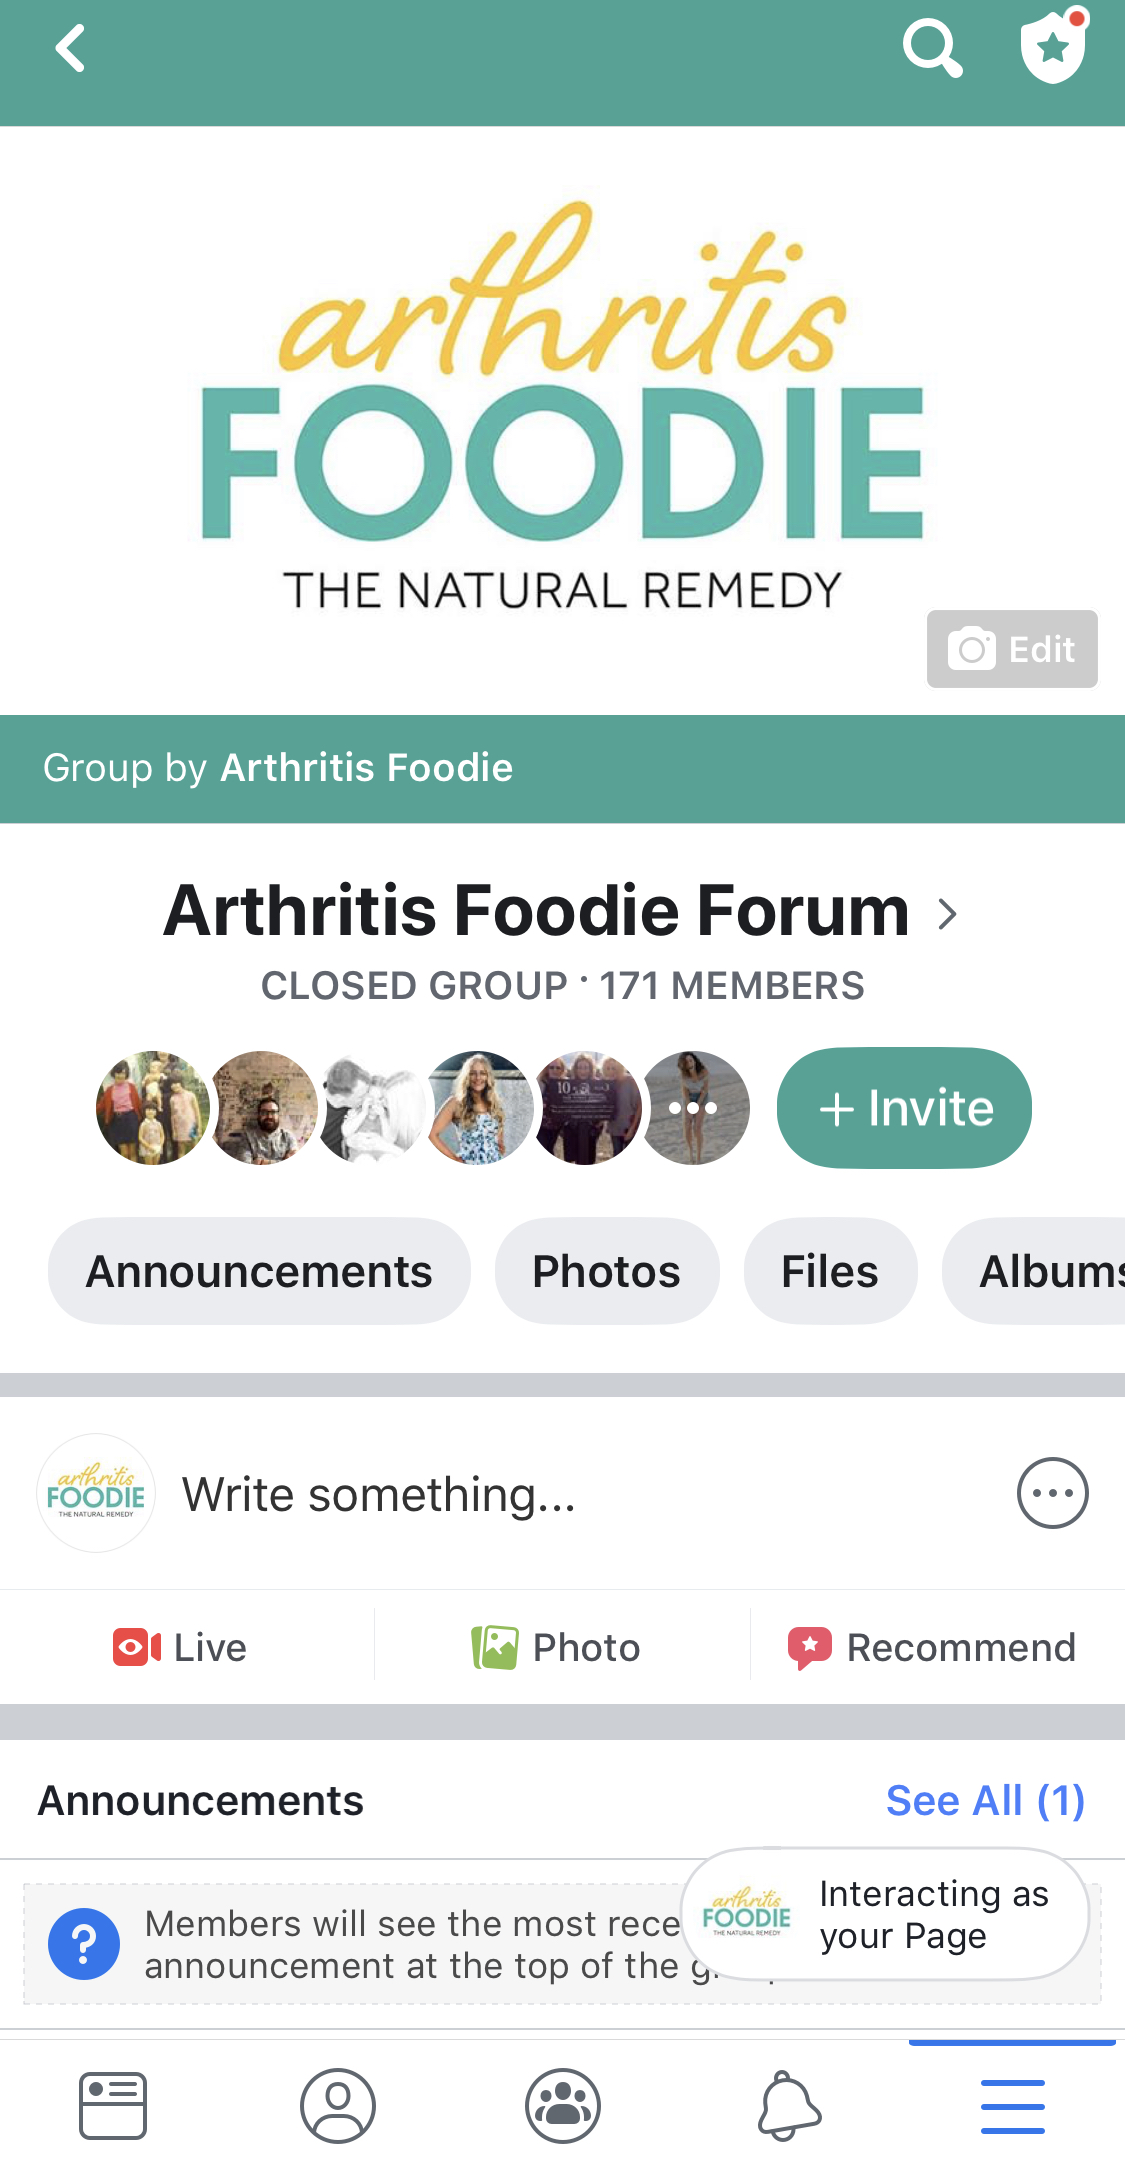 Arthritis Foodie Forum on Facebook, living with arthritis, arthritis facebook group, rheumatoid arthritis, oesteoarthritis, arthritis food, foods for arthritis, exercise for arthritis, young people with arthritis